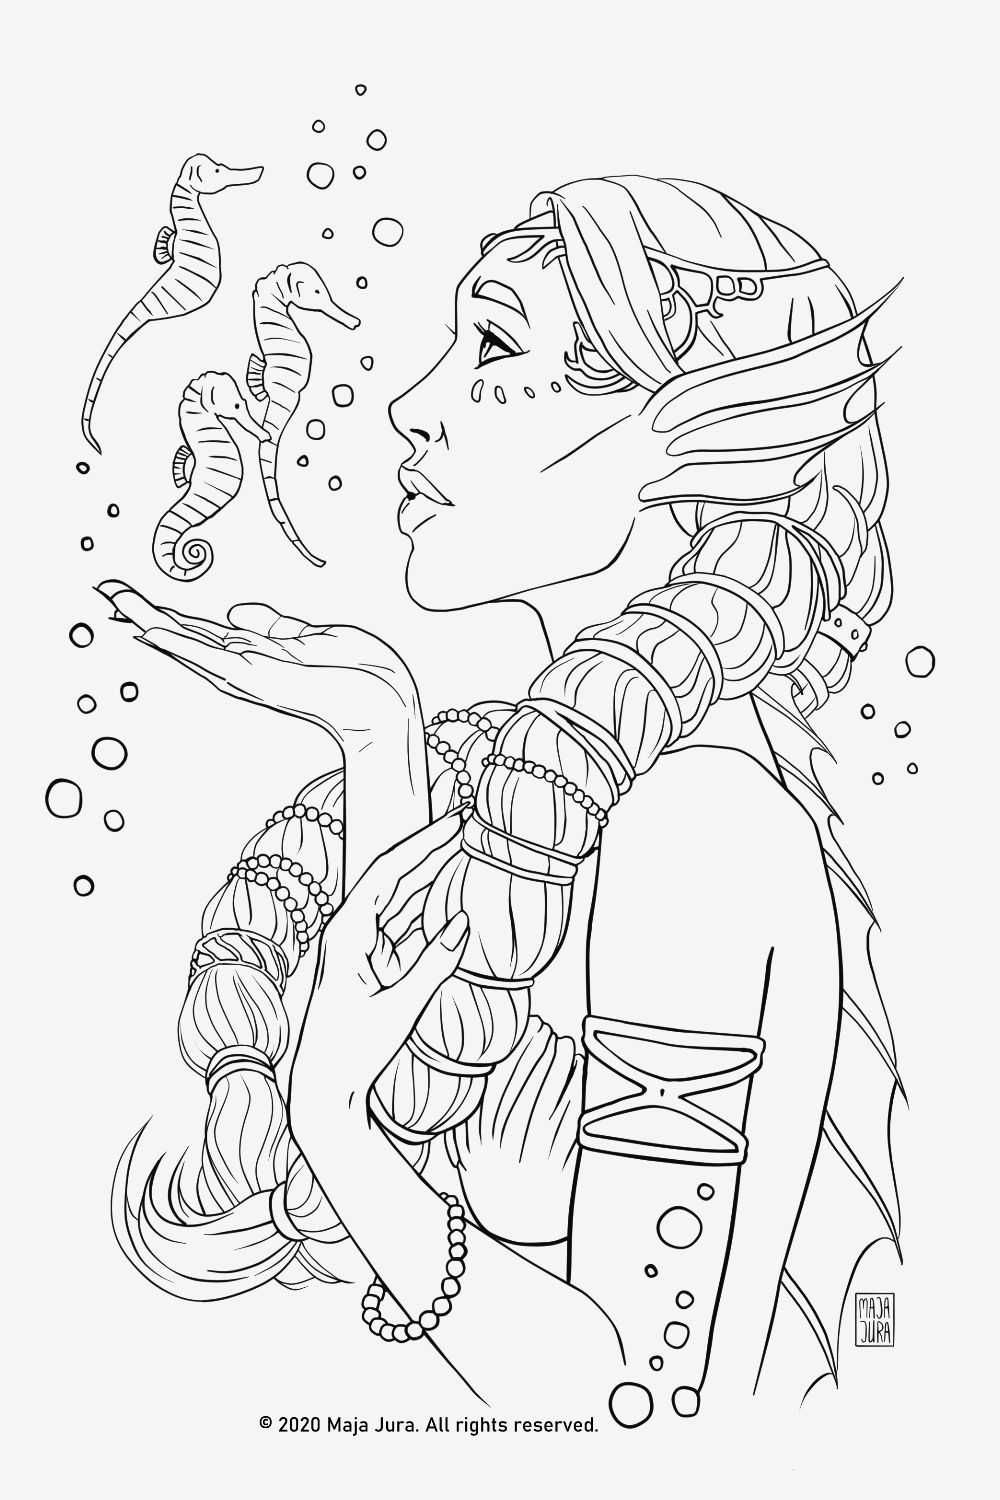 Mermaid Princess Lineart Coloring Pages Premium Coloring ...